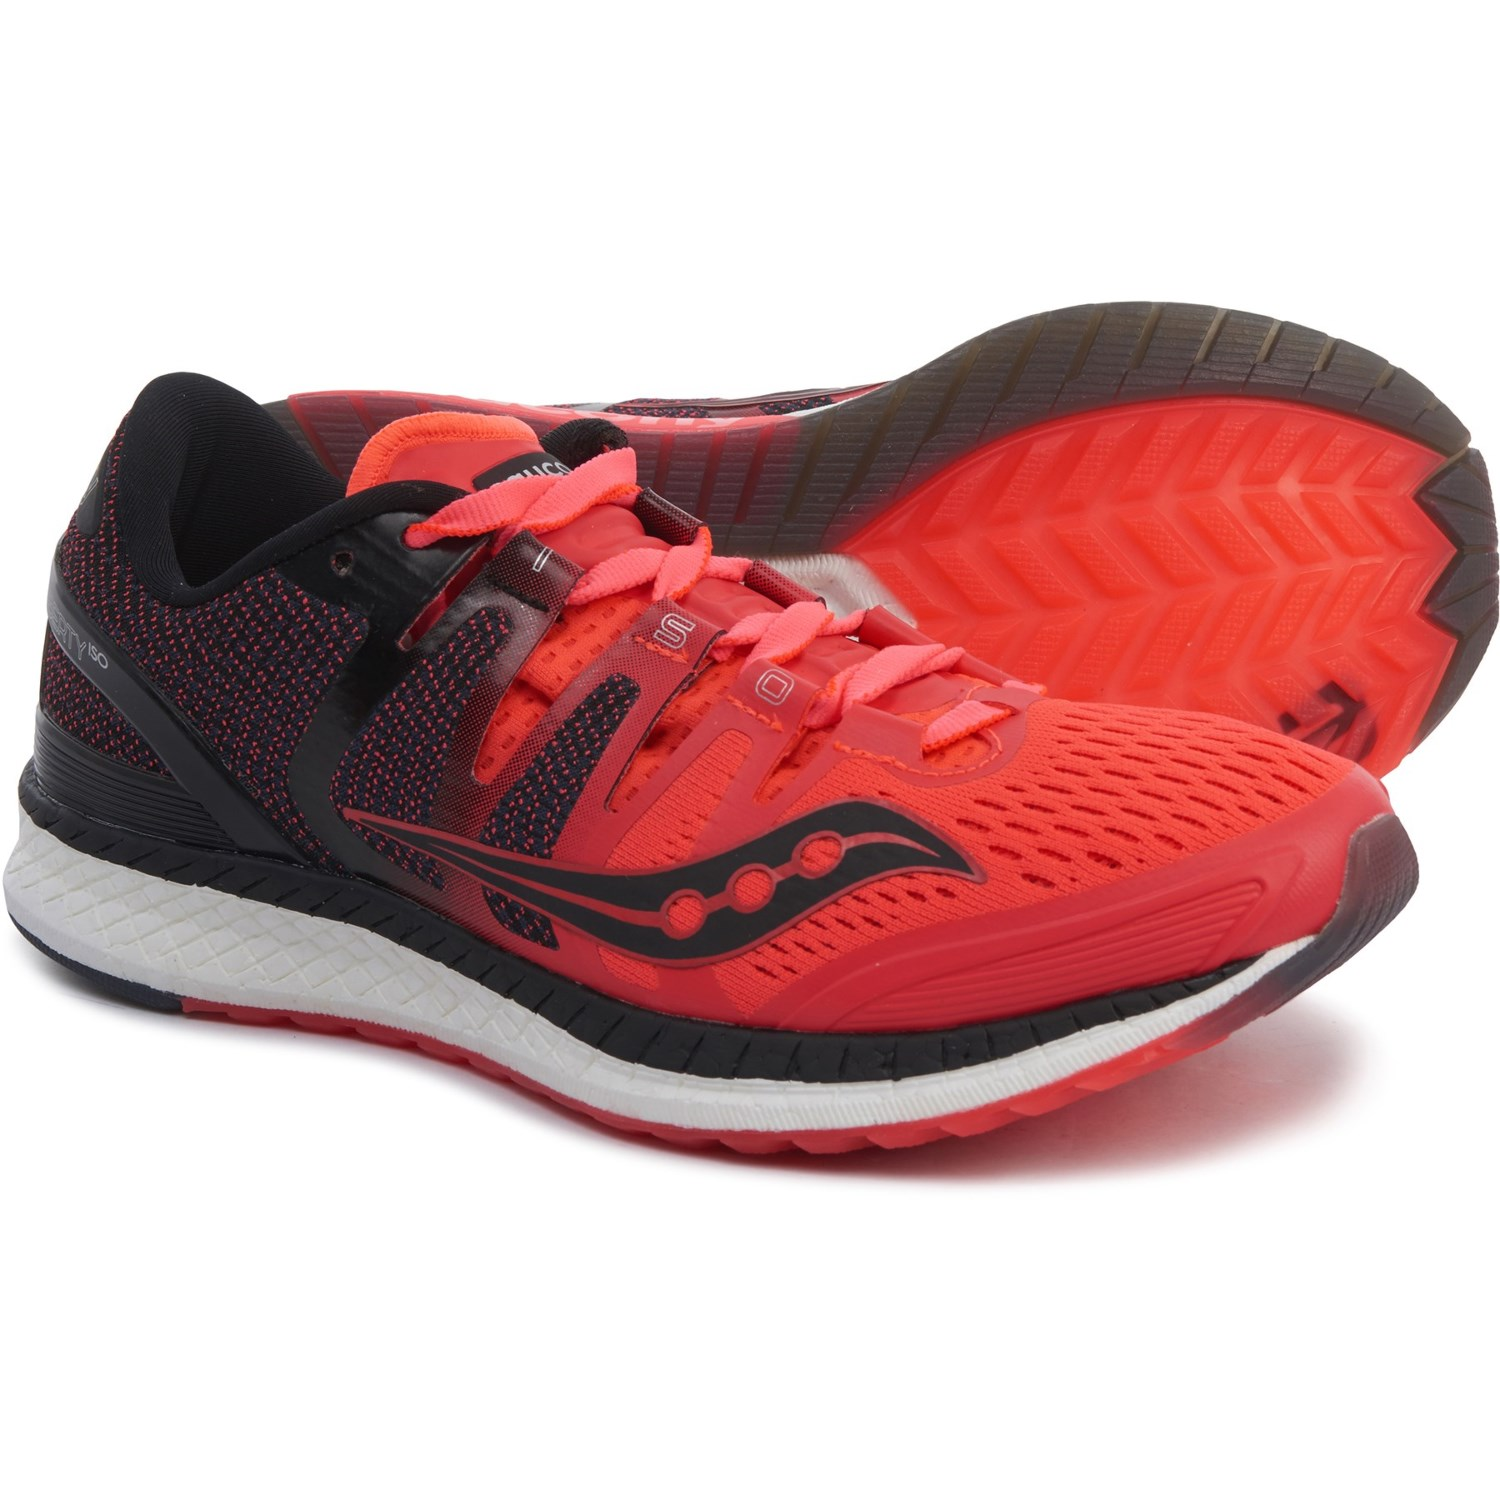 Saucony Boys & Girls Ride 9 and Guide 10 Running Shoes $25 +